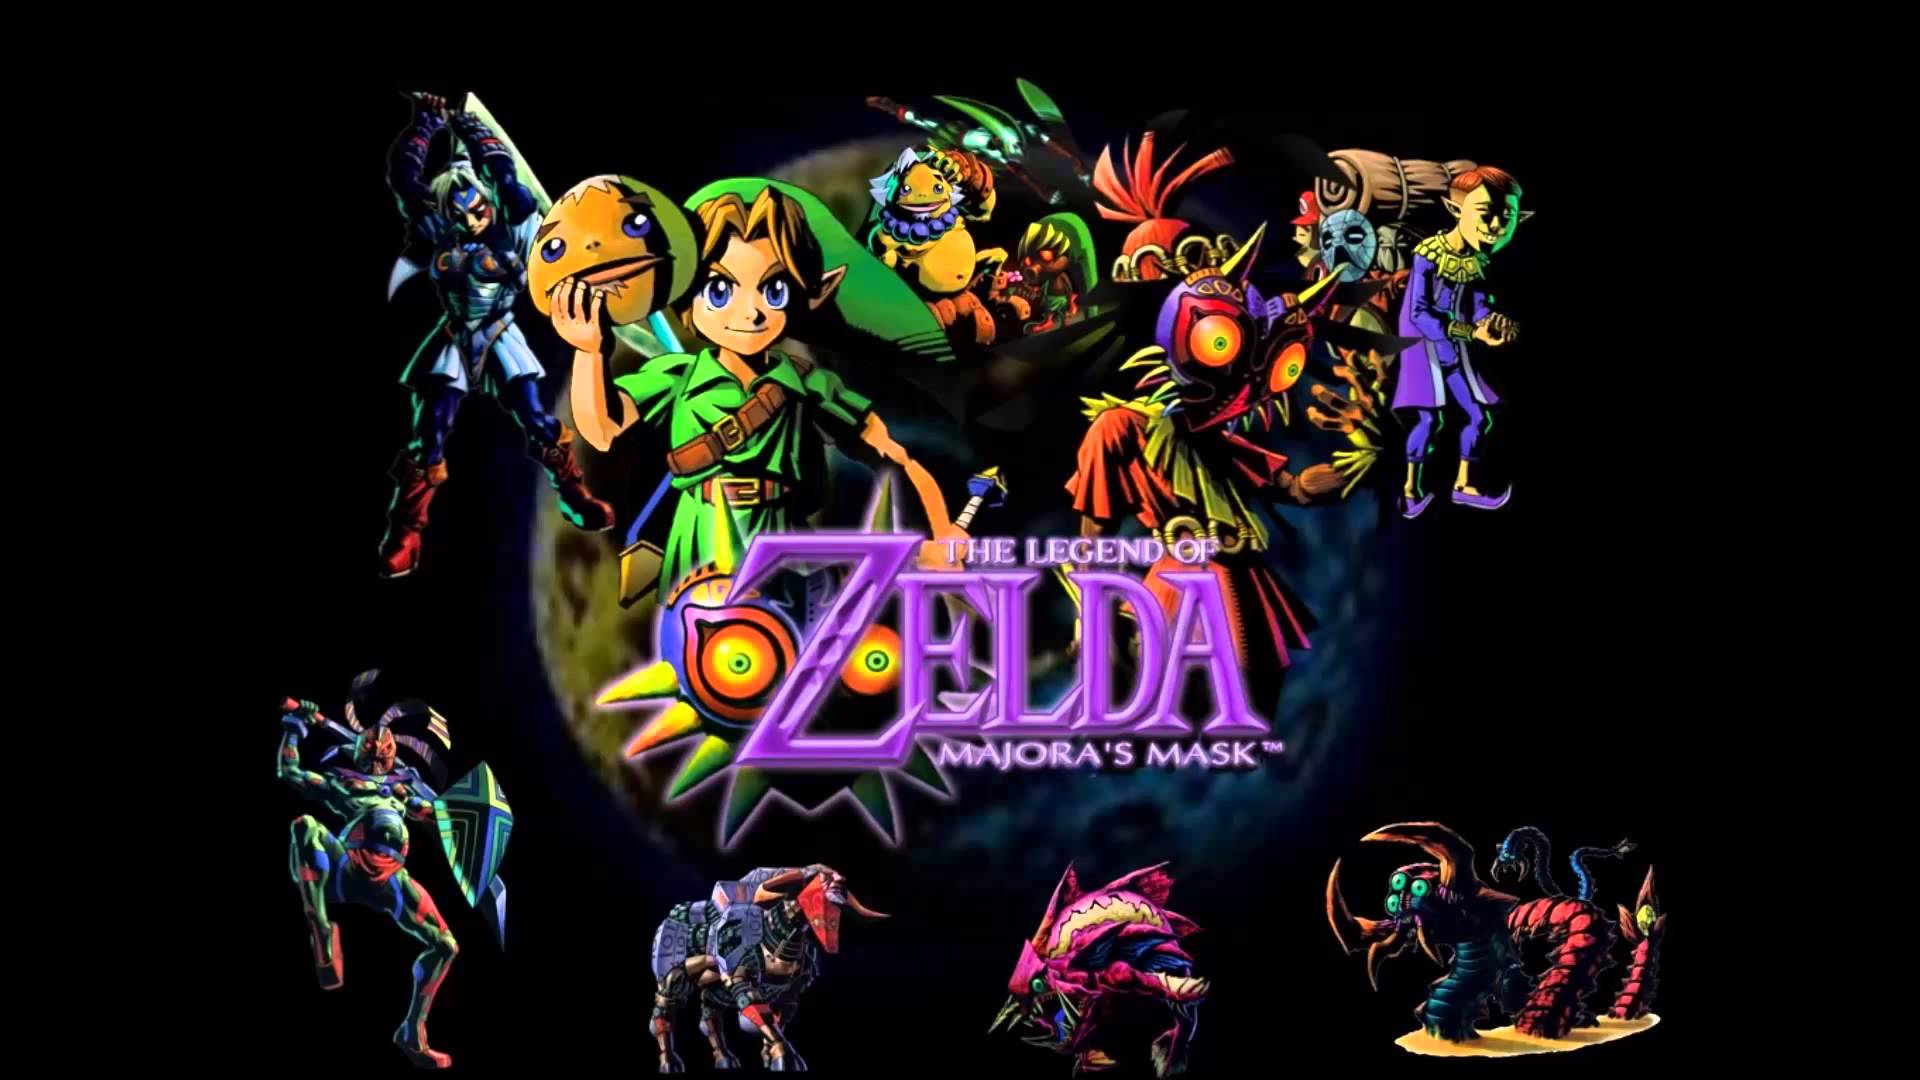 The Legend Of Zelda: Majora's Mask Wallpapers